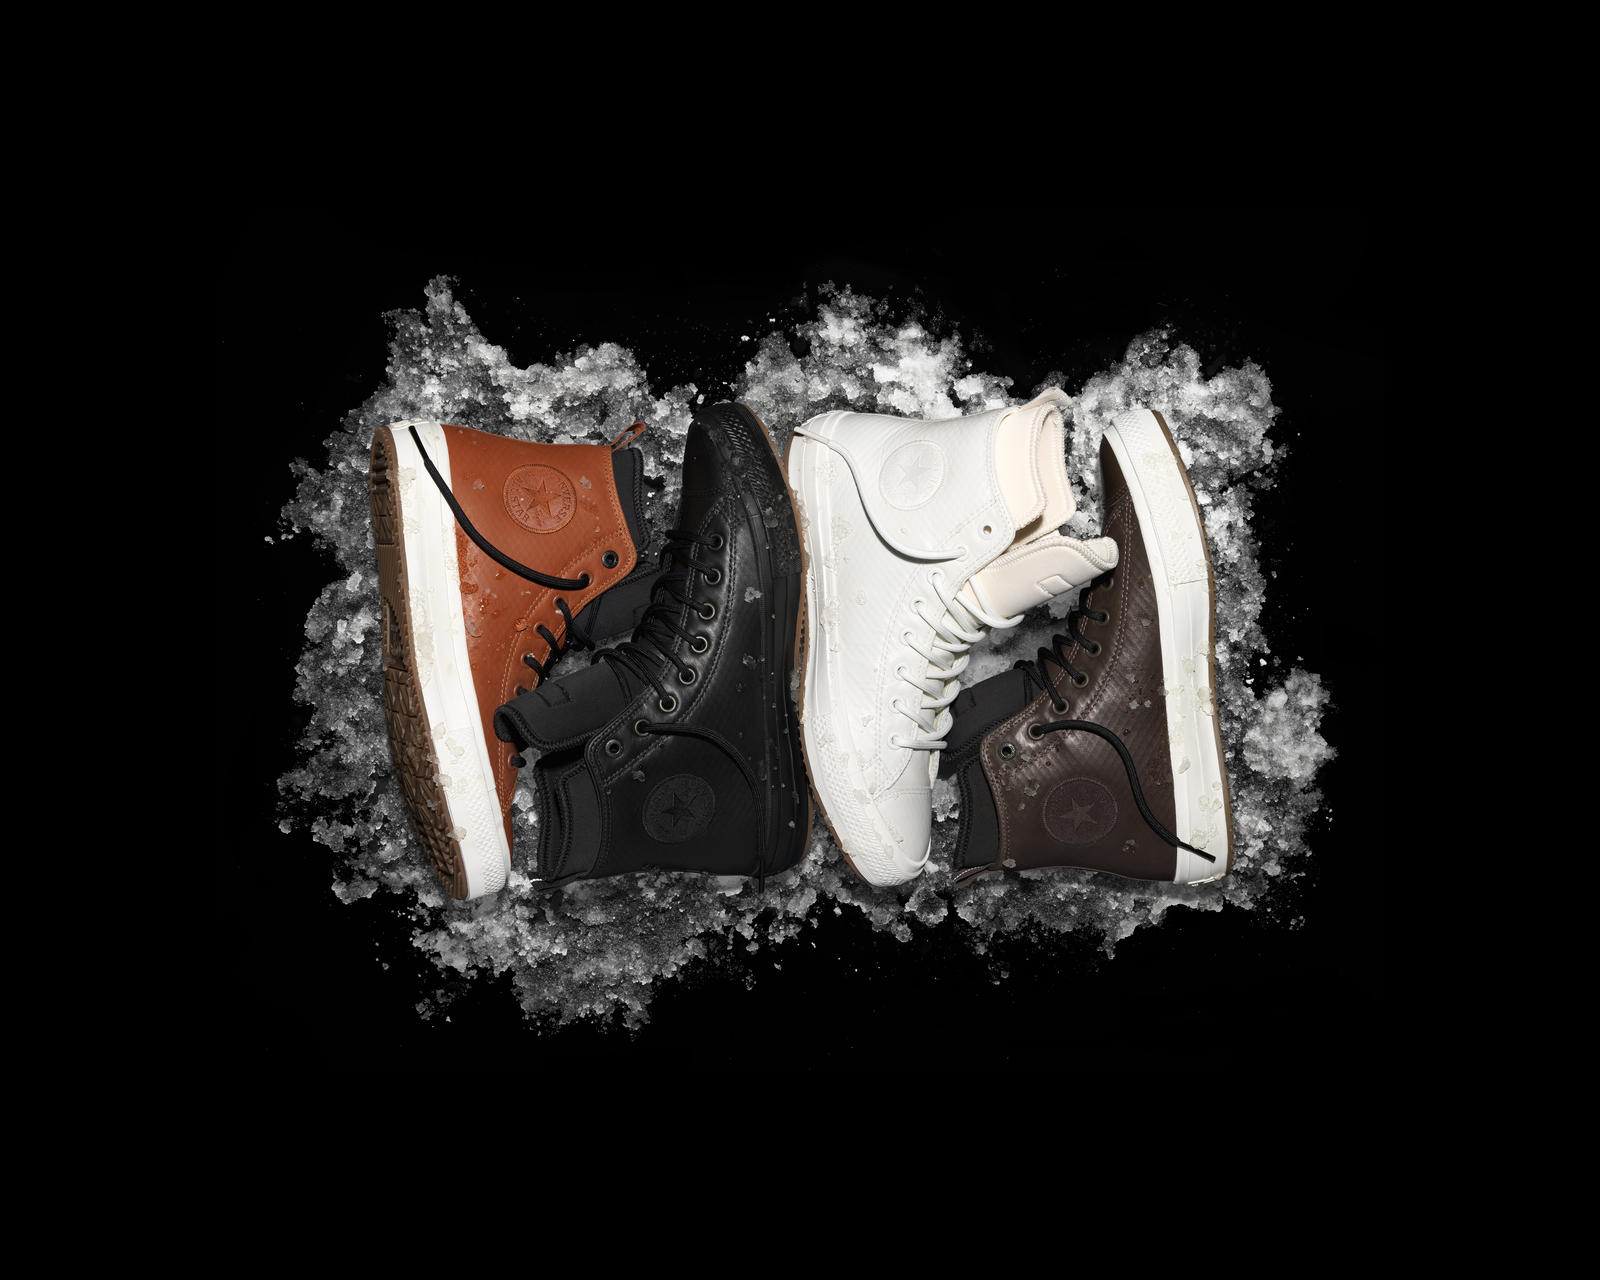 376cf640916d Fh16 As Chuck Ii Boot Group On Black. The Fall Holiday 2016 Converse  Counter Climate Boot collection ...